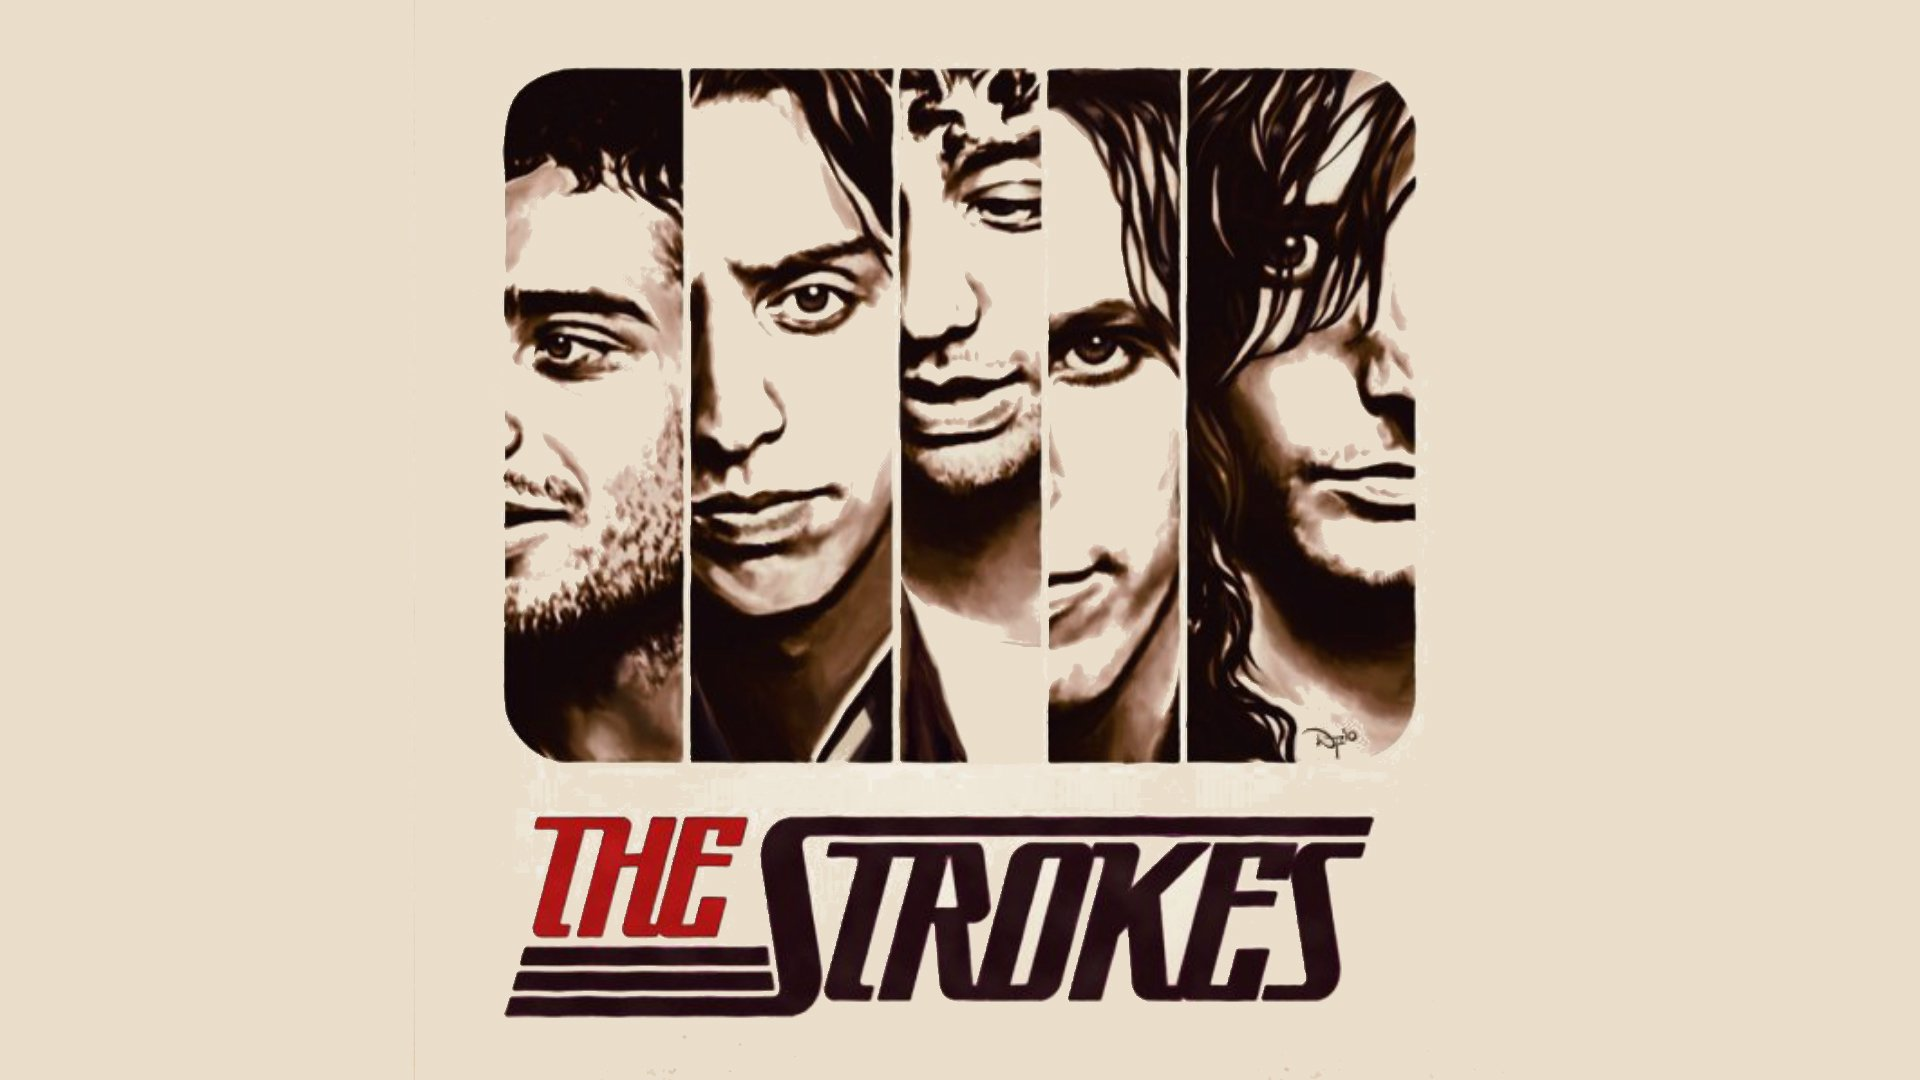 9 the strokes hd wallpapers background images wallpaper abyss the strokes hd wallpaper background image id559575 thecheapjerseys